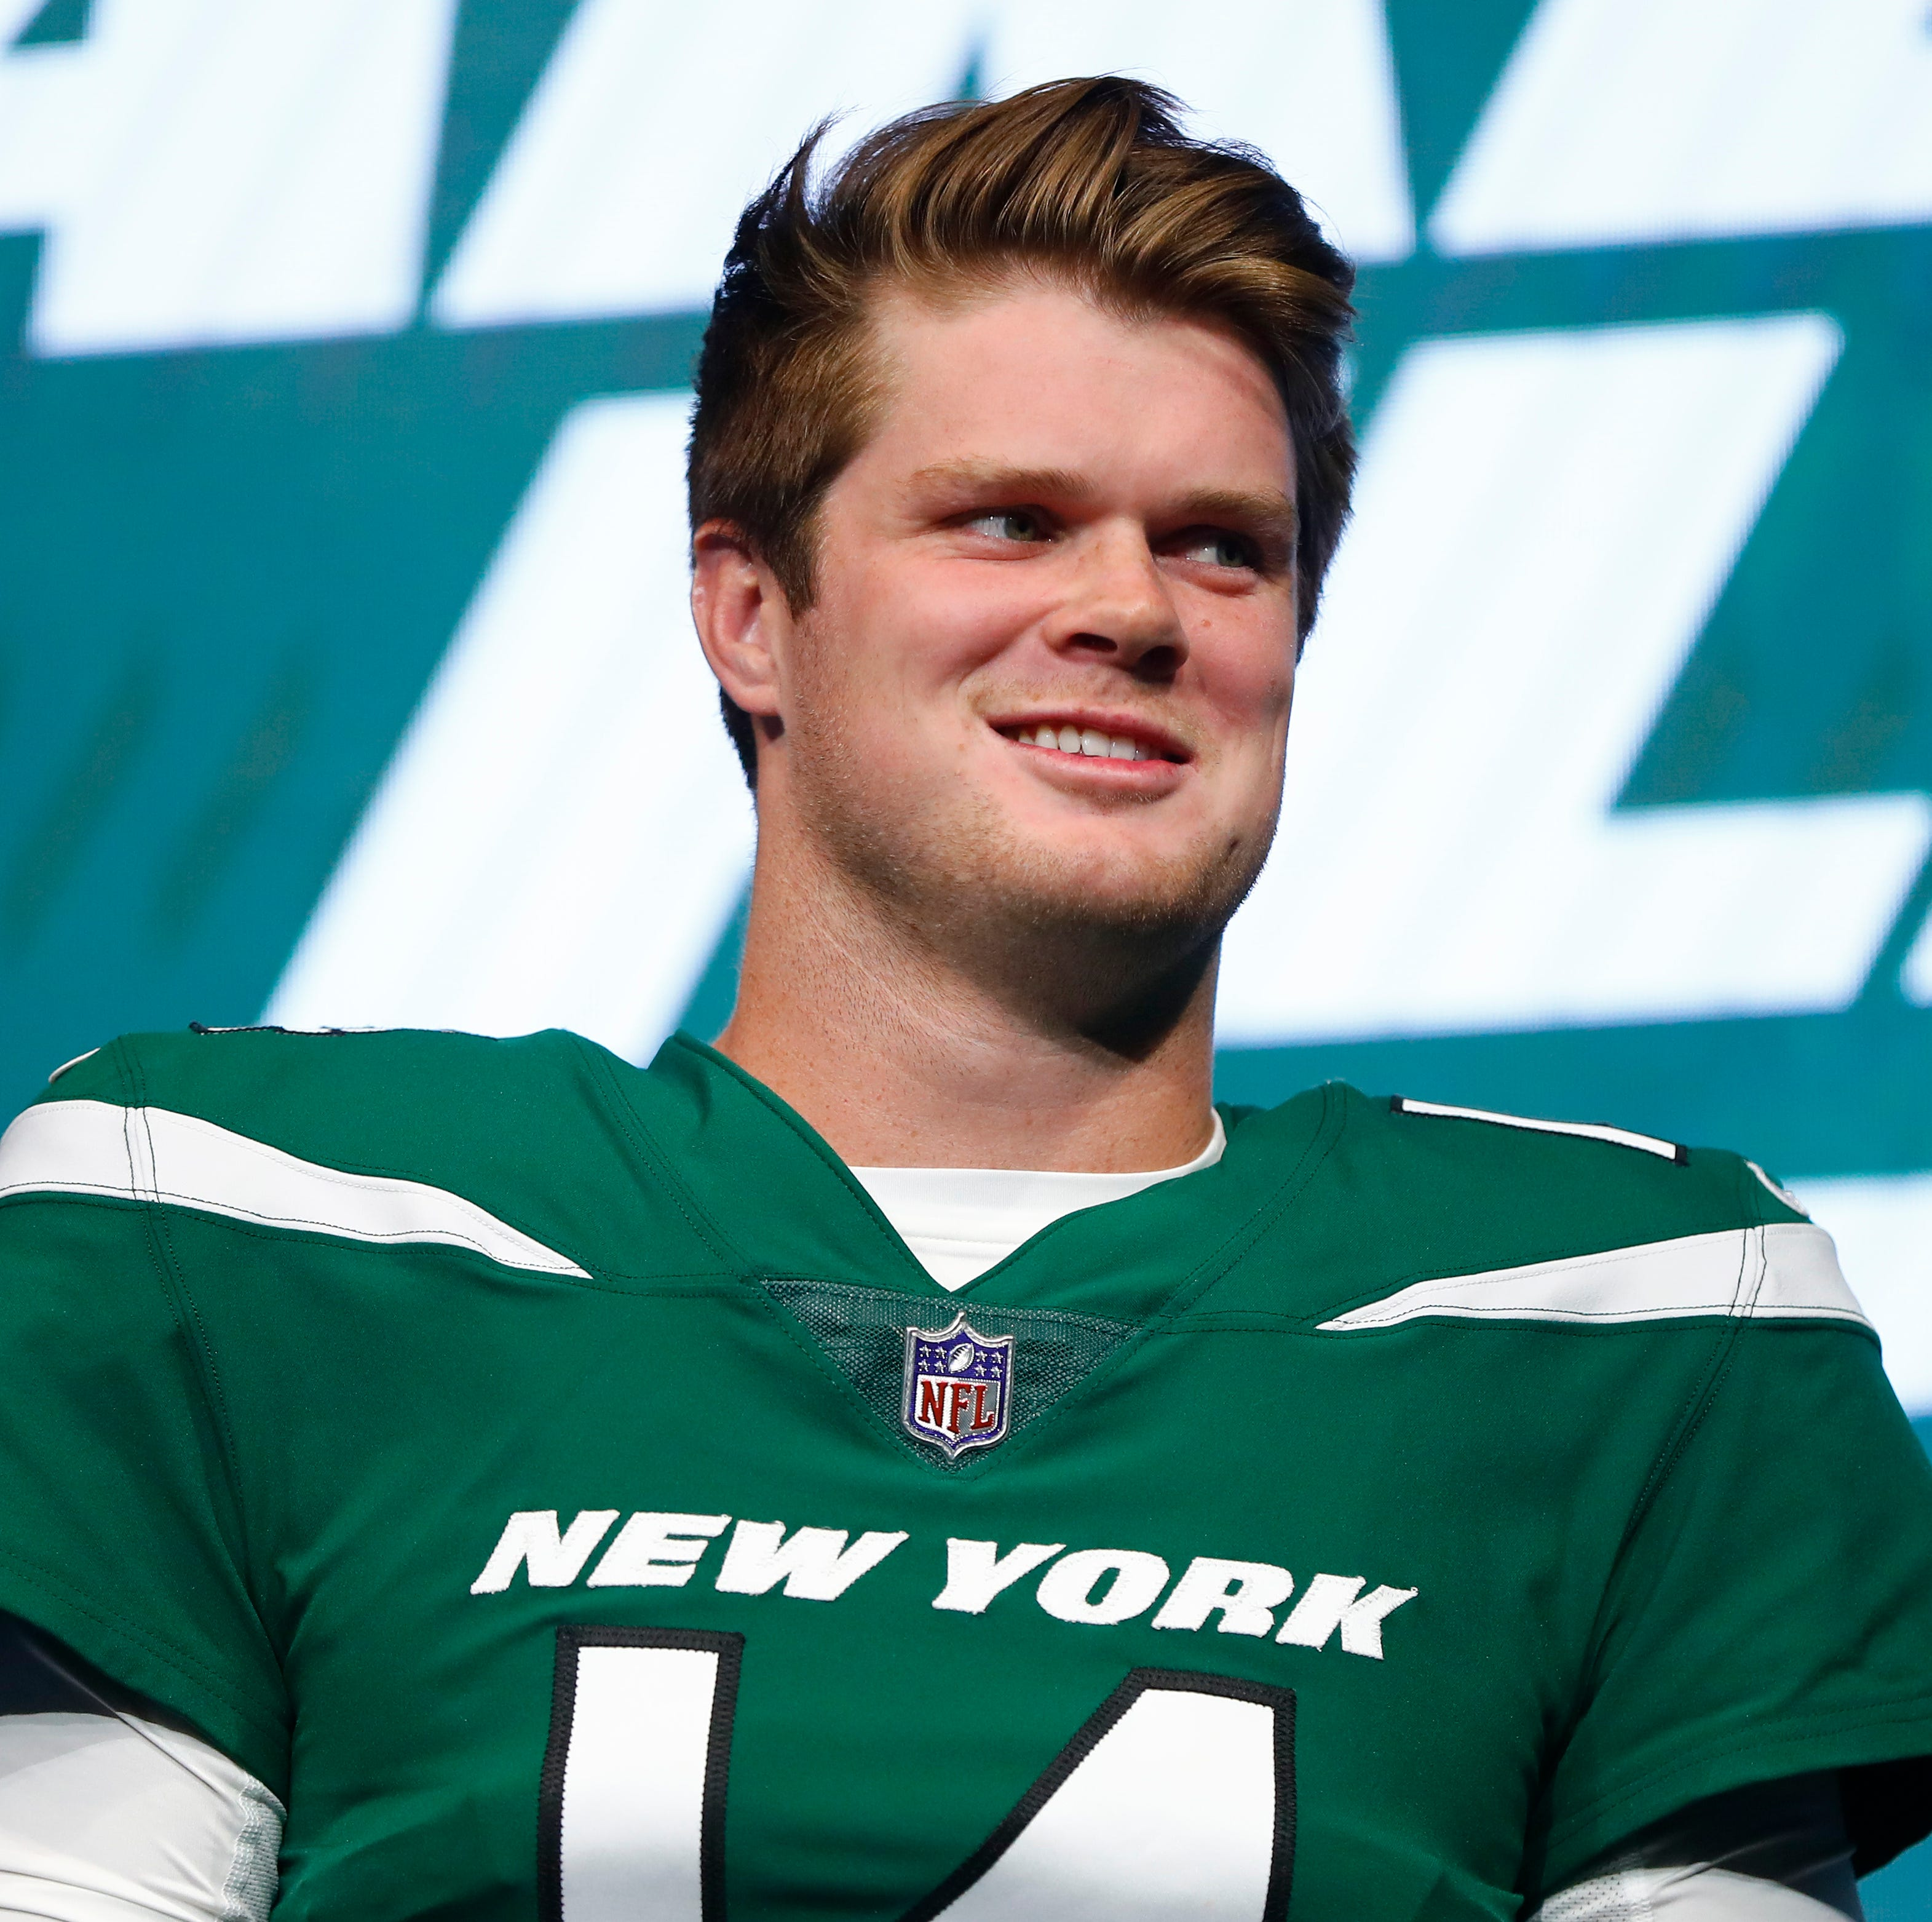 Jets troll Giants ahead of NFL Draft over picking Saquon Barkley over Sam Darnold